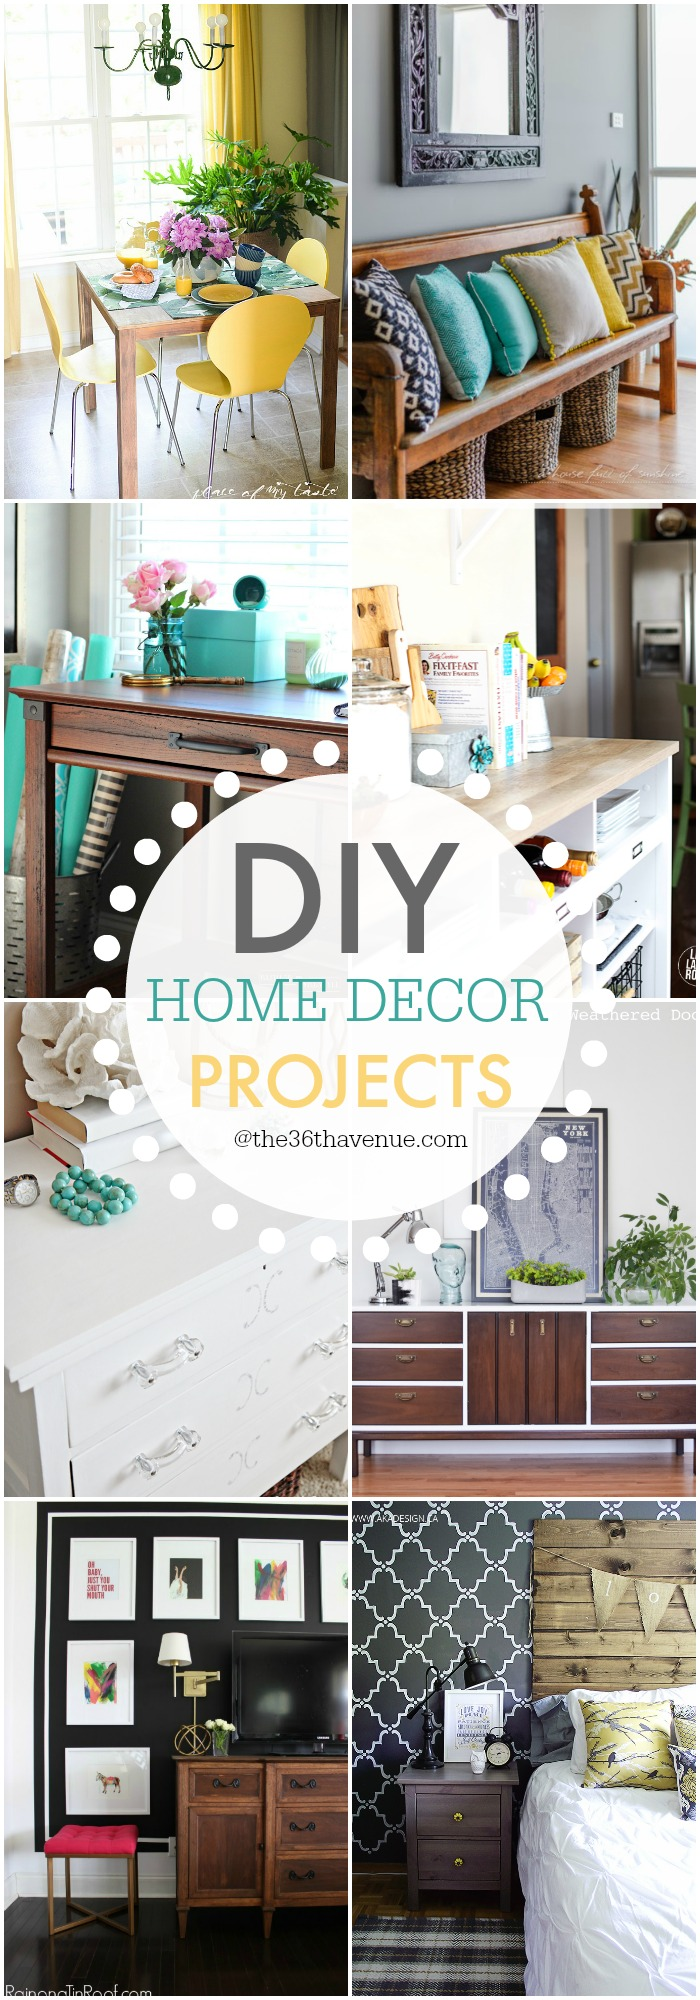 The 36th avenue diy home decor projects and ideas the 36th avenue Home design ideas diy